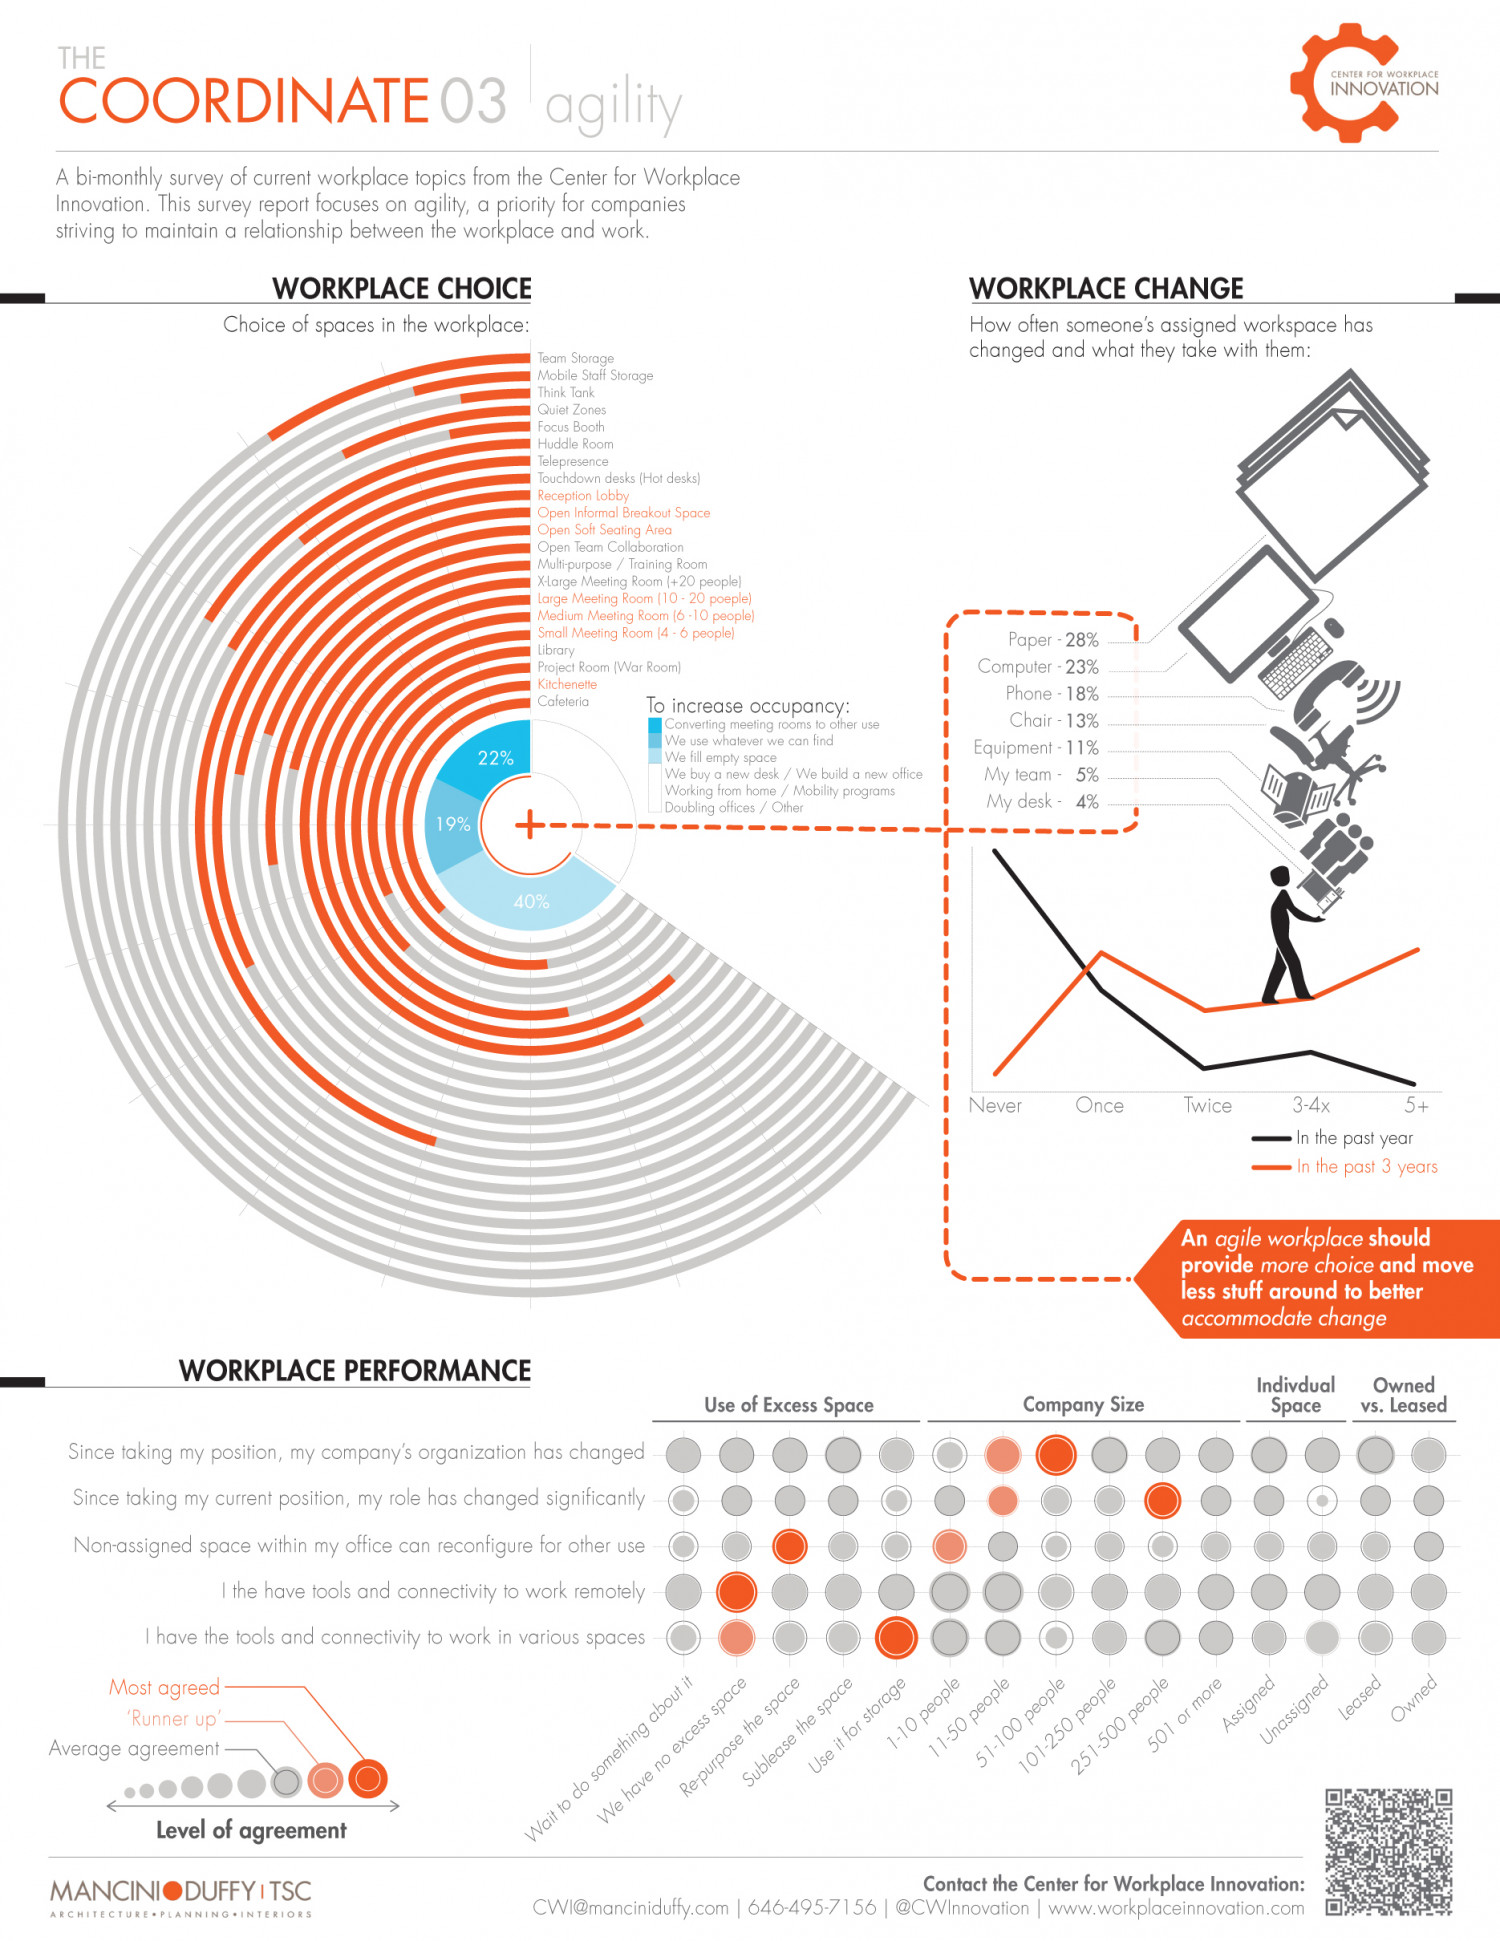 The Coordinate 03 - Workplace Agility Infographic